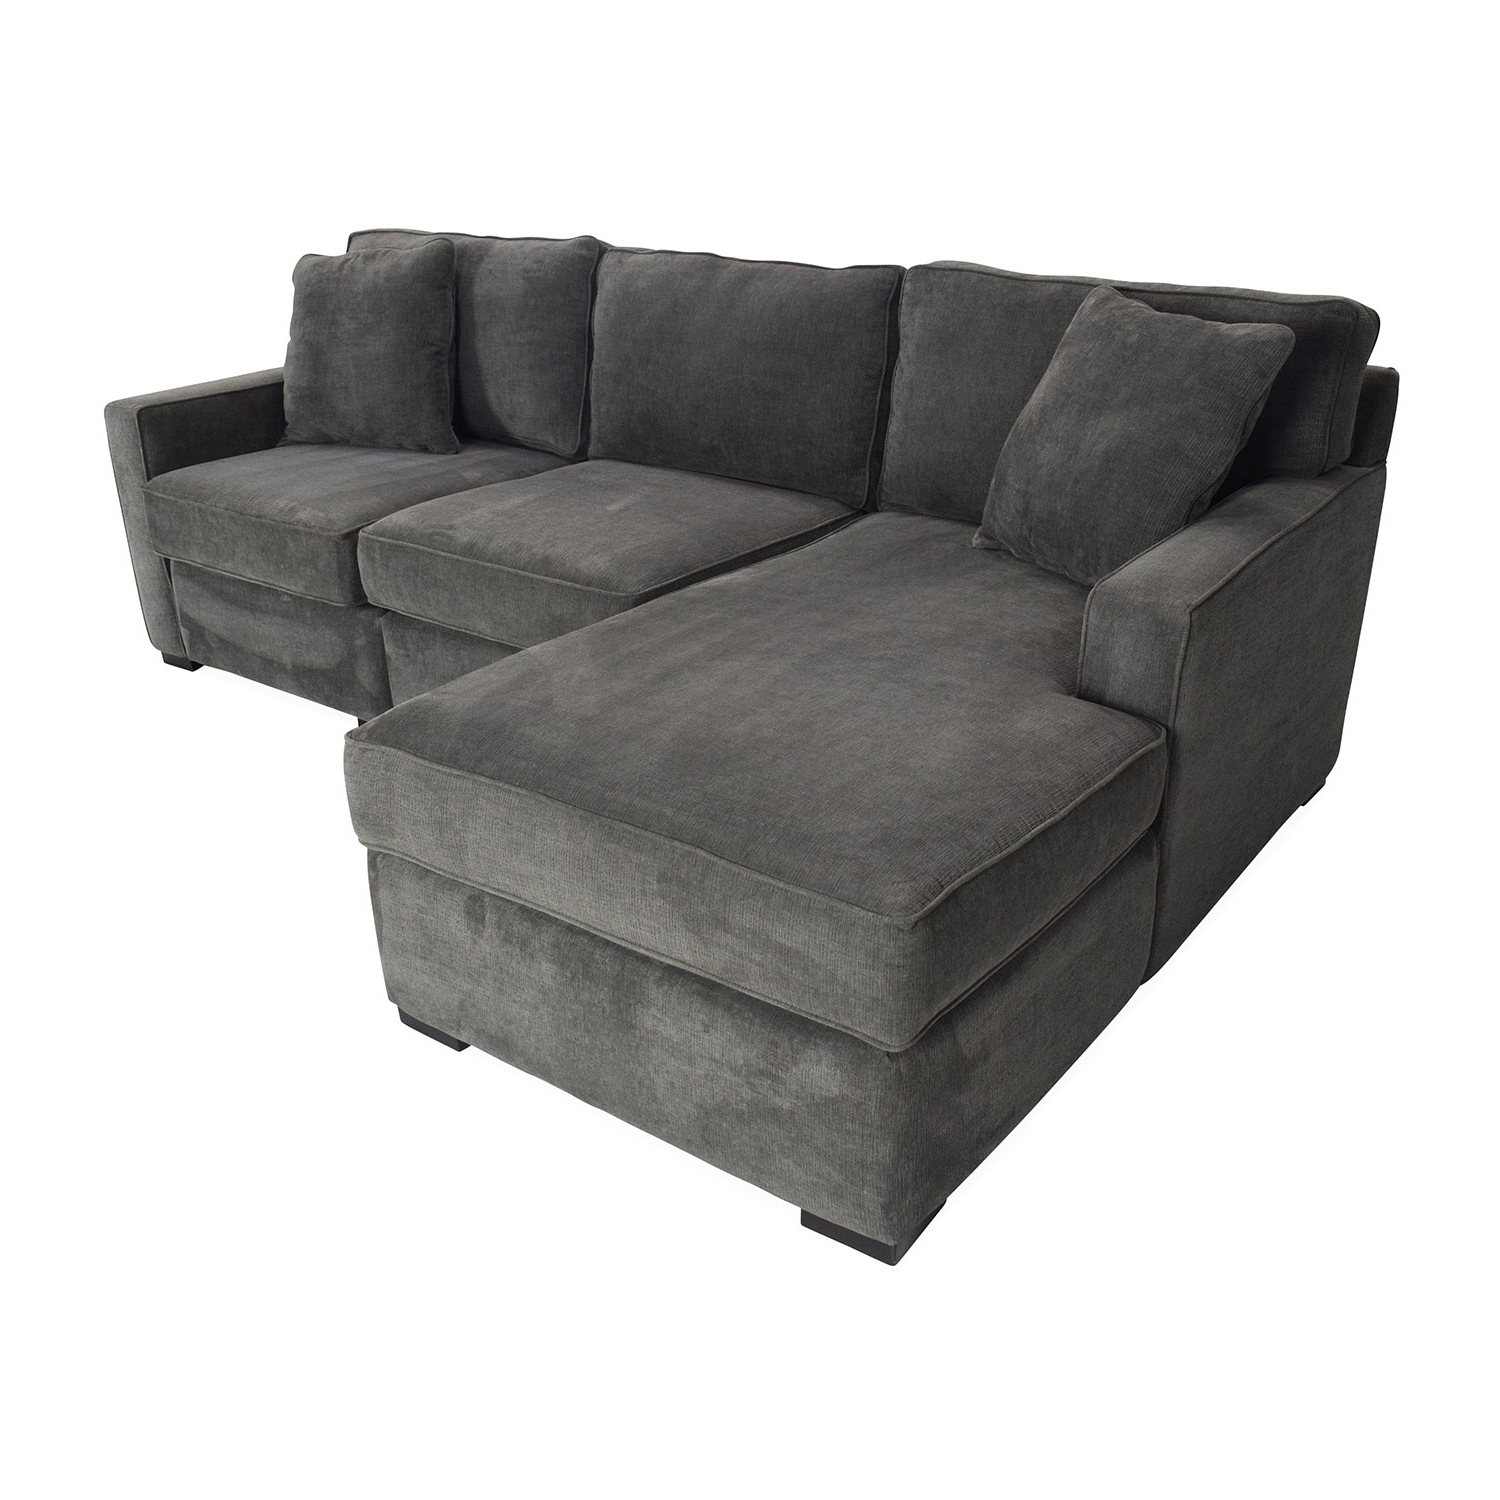 [%51% Off – Macy's Radley Sectional Sofa / Sofas For Best And Newest Macys Sectional Sofas|macys Sectional Sofas With Preferred 51% Off – Macy's Radley Sectional Sofa / Sofas|2019 Macys Sectional Sofas Throughout 51% Off – Macy's Radley Sectional Sofa / Sofas|popular 51% Off – Macy's Radley Sectional Sofa / Sofas Regarding Macys Sectional Sofas%] (View 3 of 20)